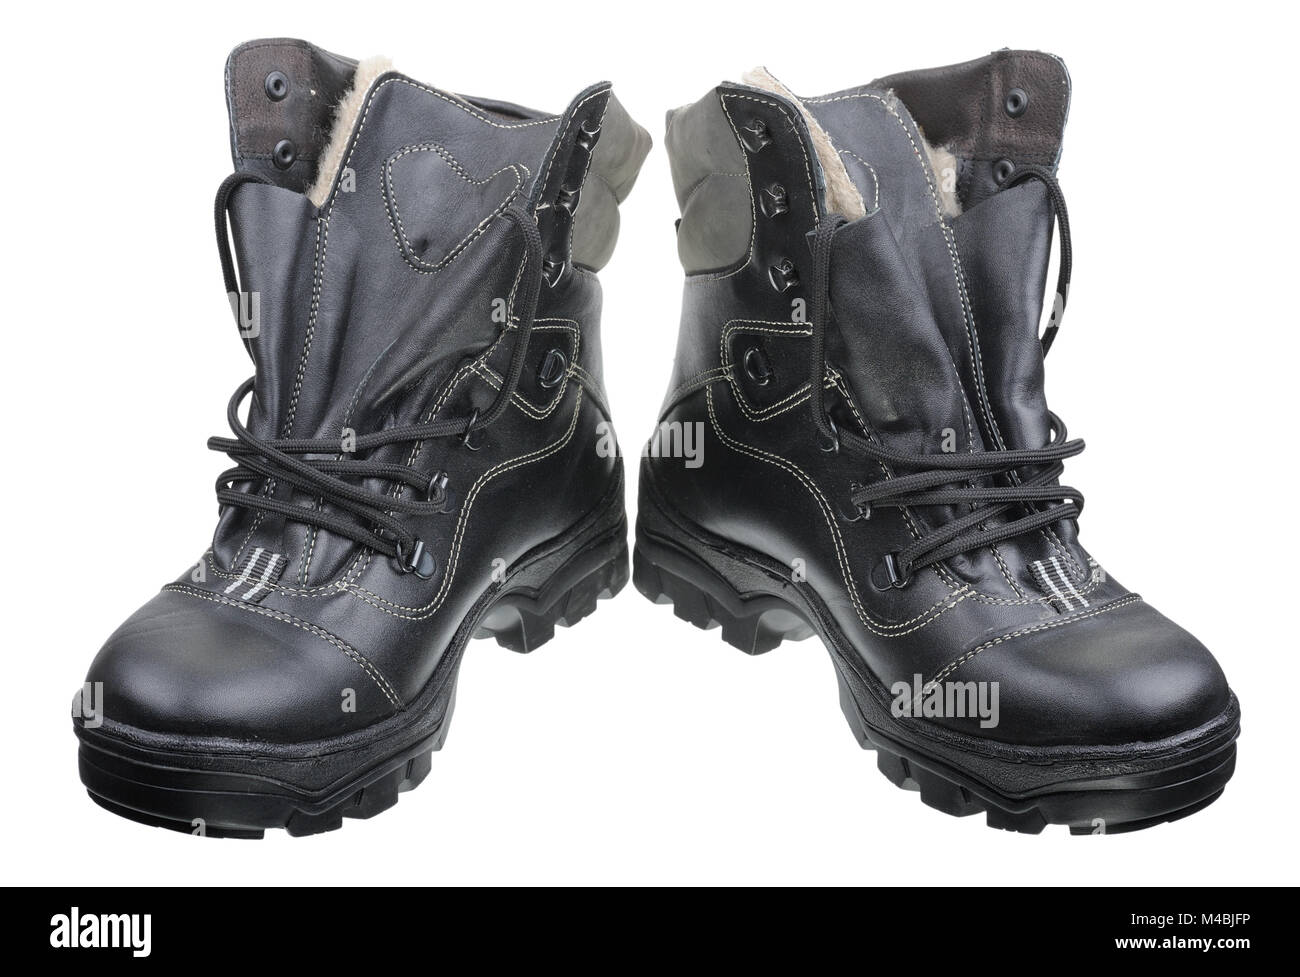 9e051b3e4bb Boots Mens Stock Photos & Boots Mens Stock Images - Alamy